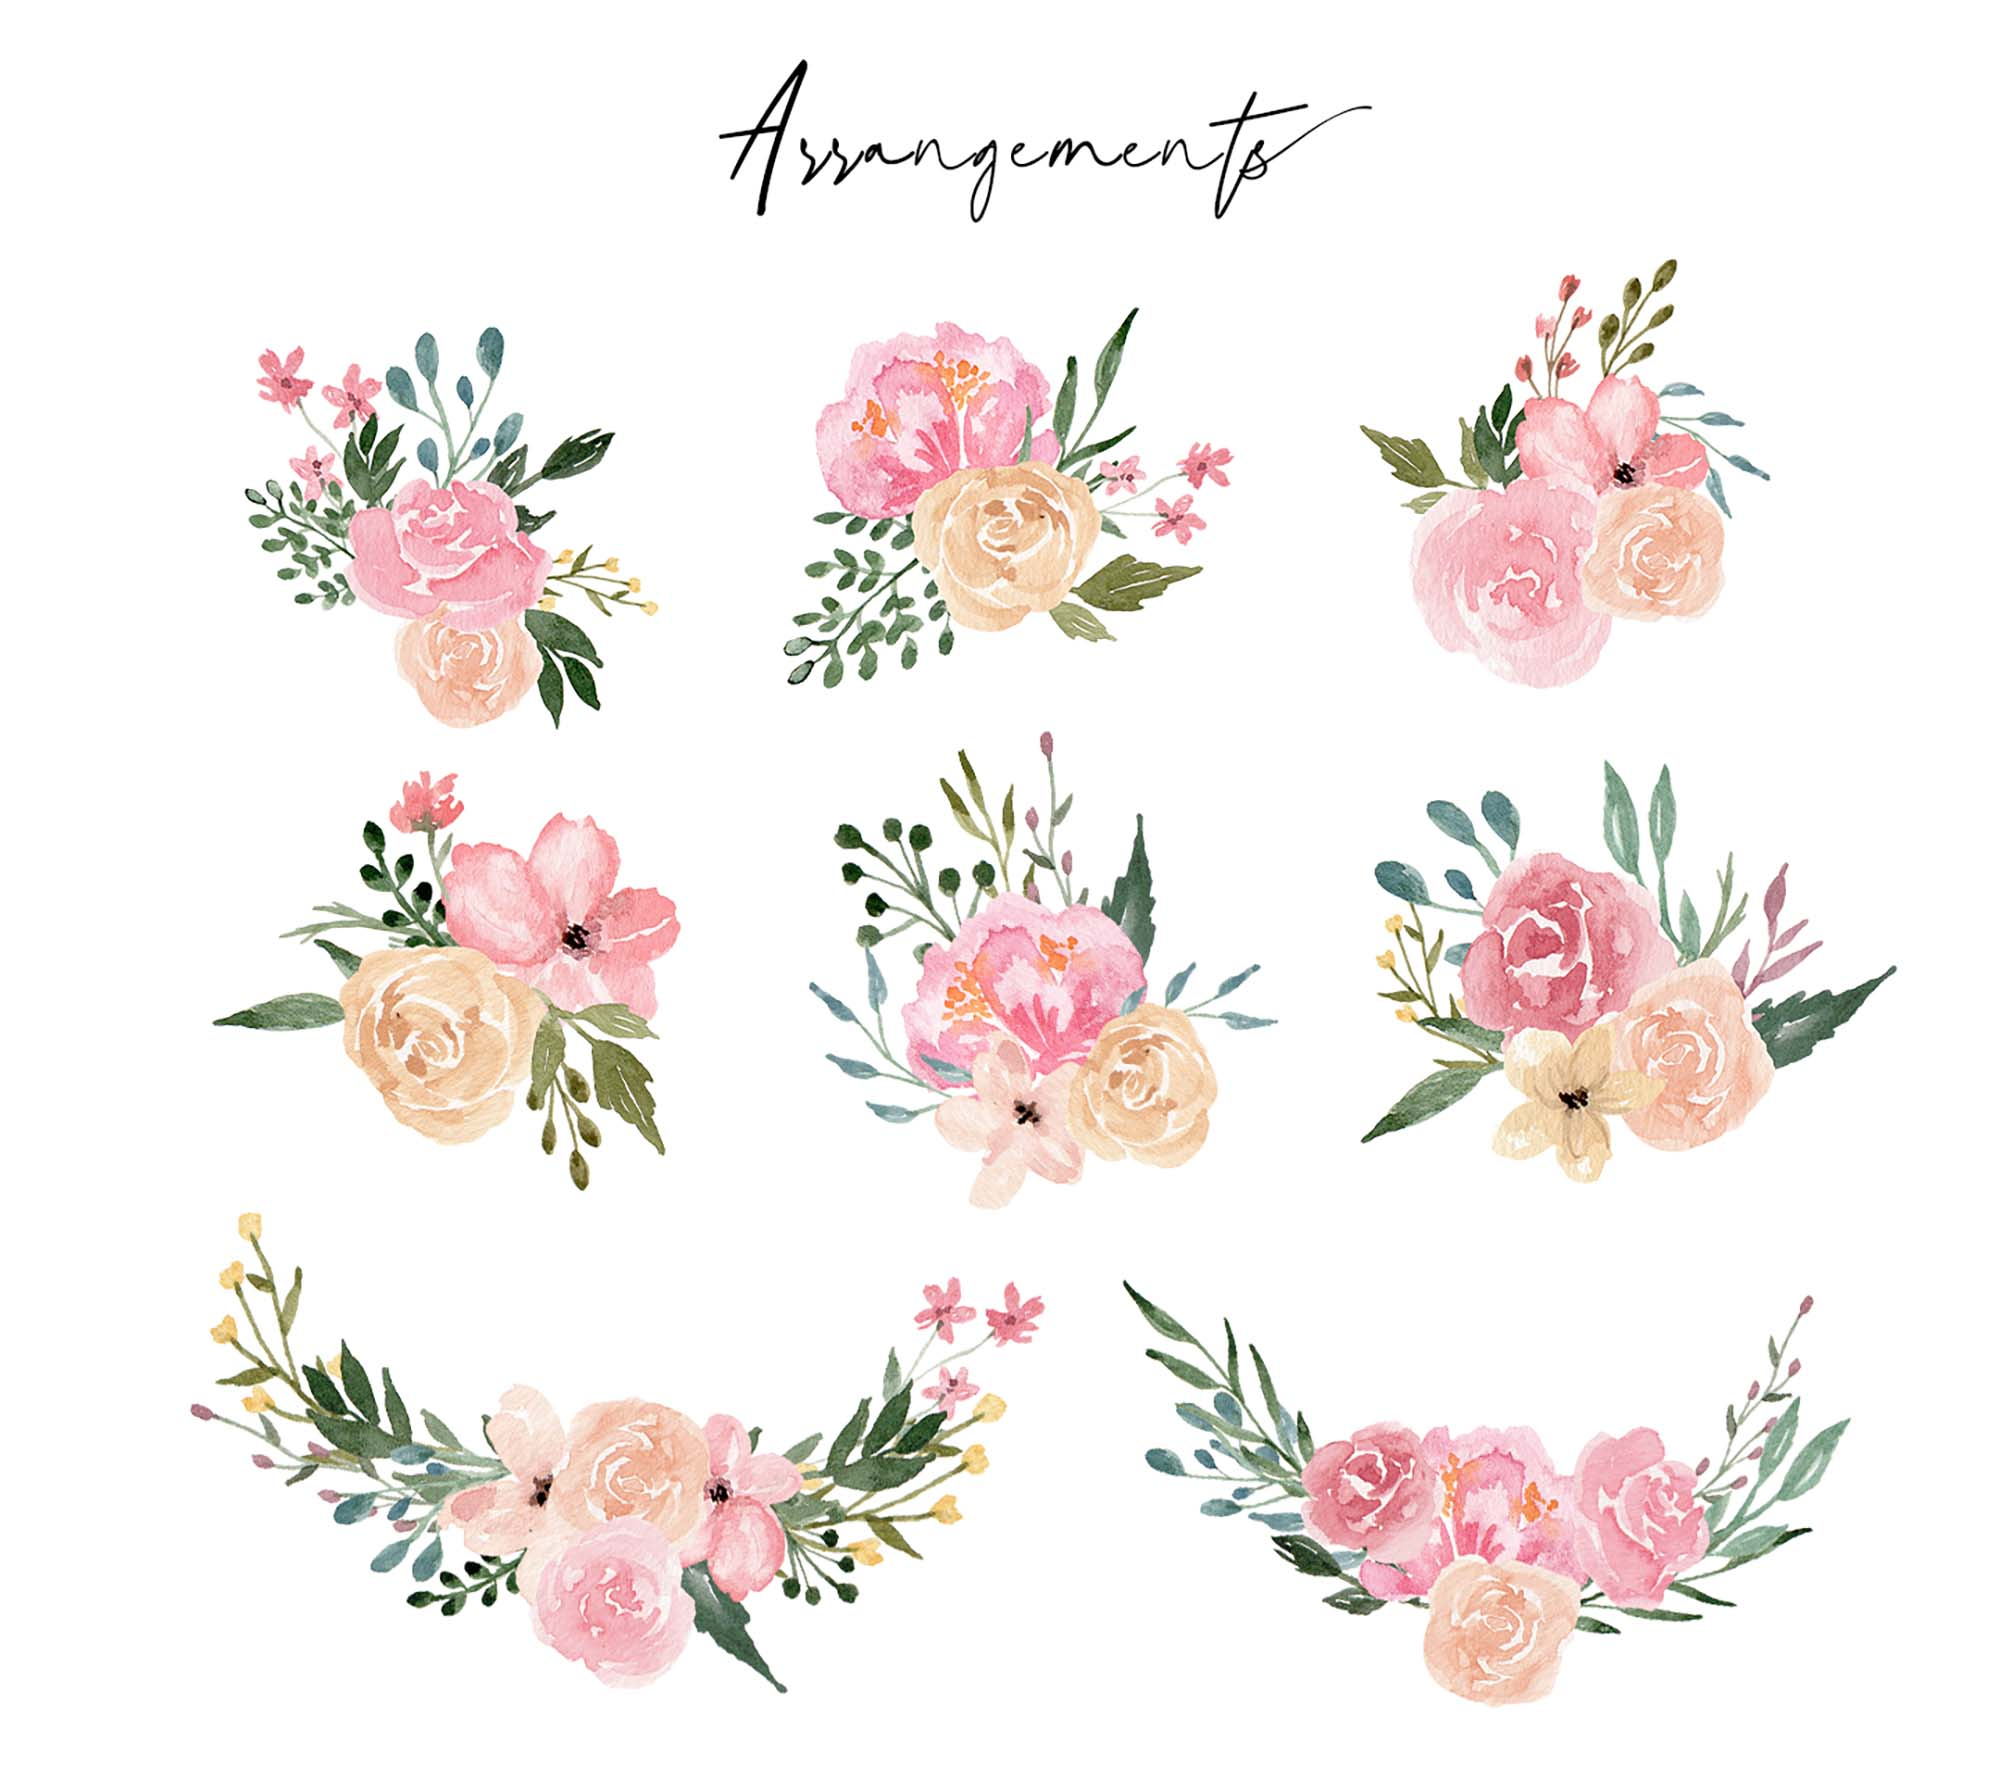 Dusty Blooms Watercolor Graphic Illustrations 5